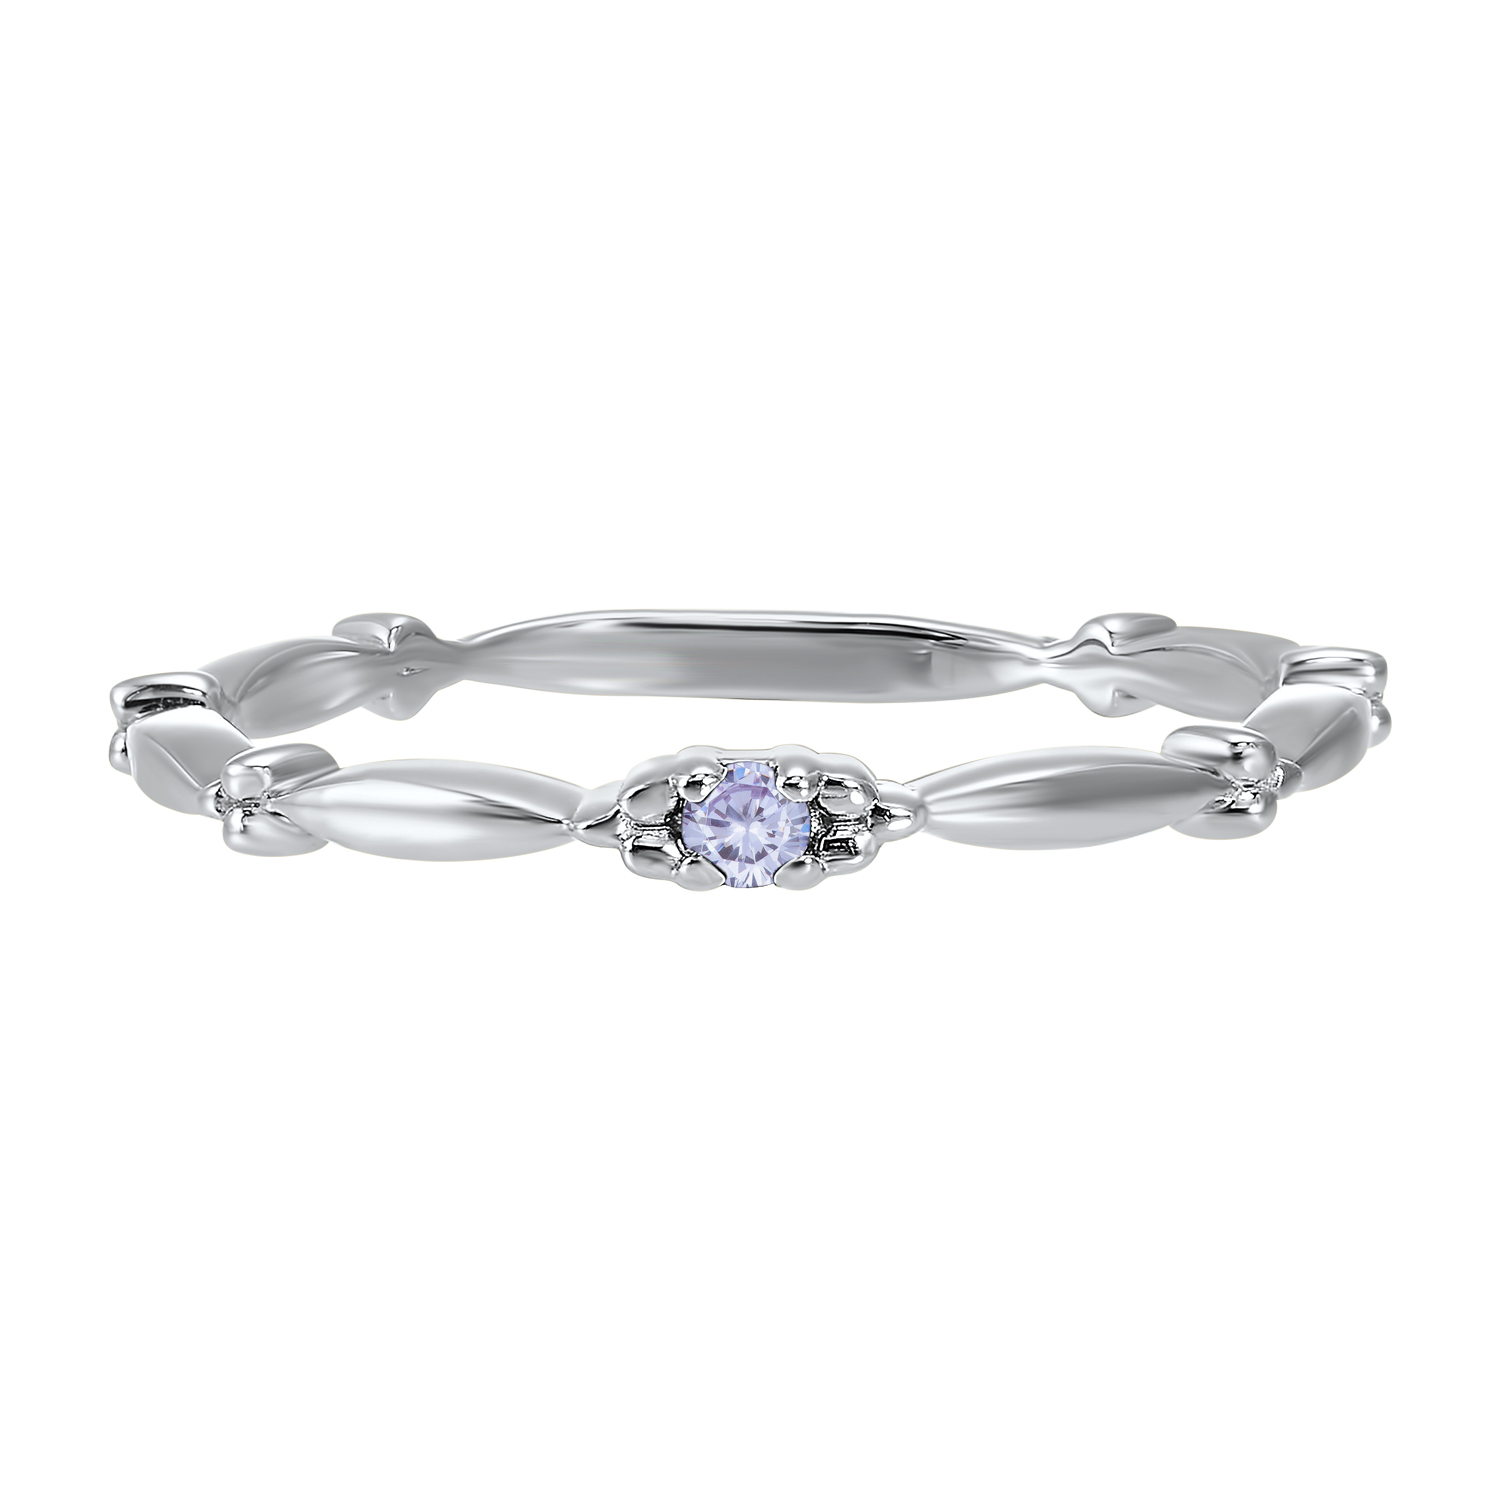 10K White Gold Stackable Prong Alexandrite Band Moseley Diamond Showcase Inc Columbia, SC